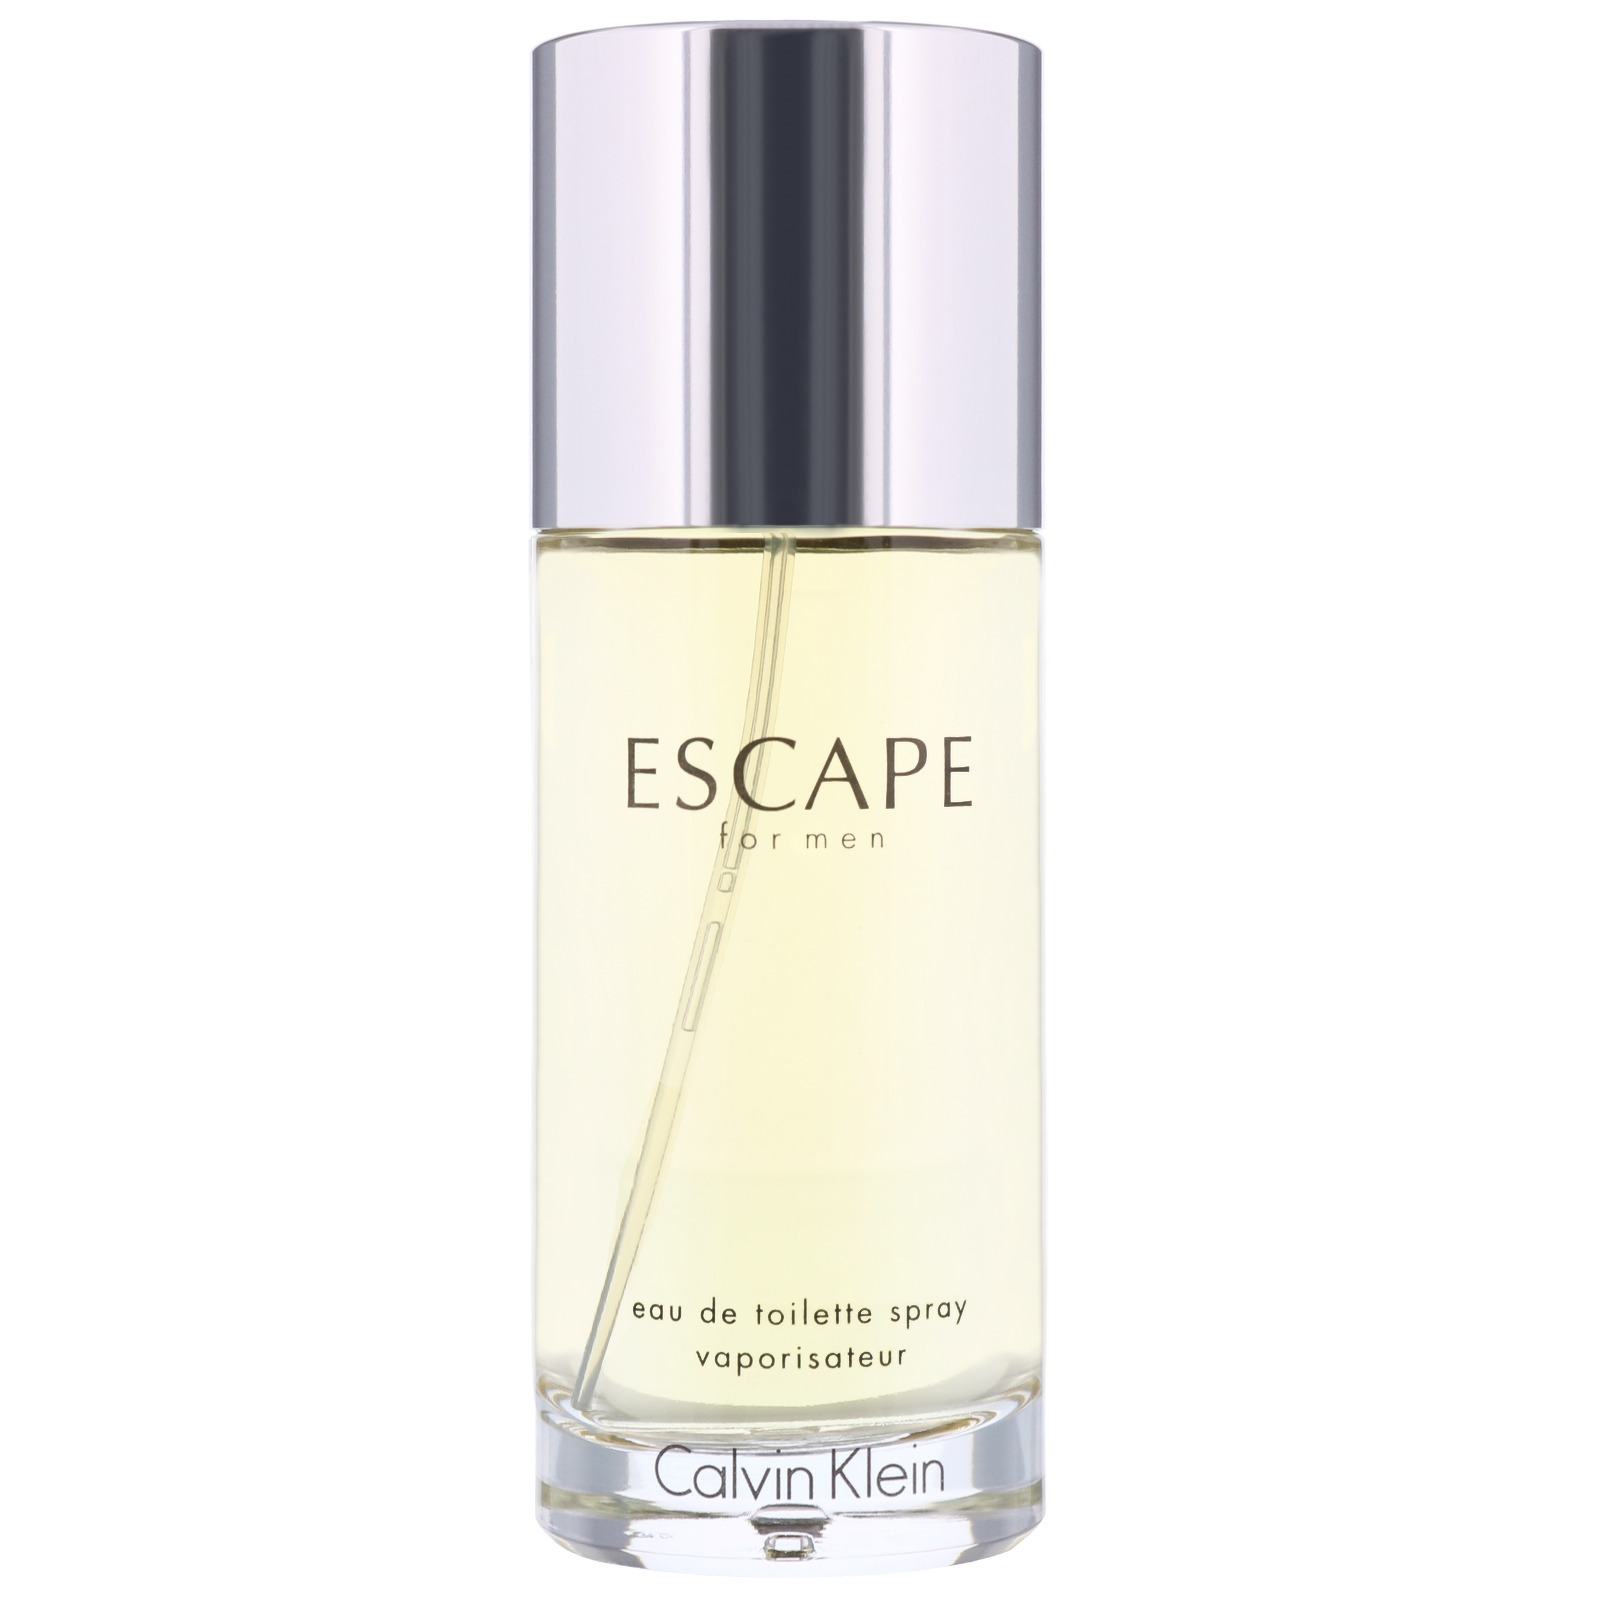 Calvin Spray Escape Toilette Klein De 100ml For Eau Men 0kXwPO8n